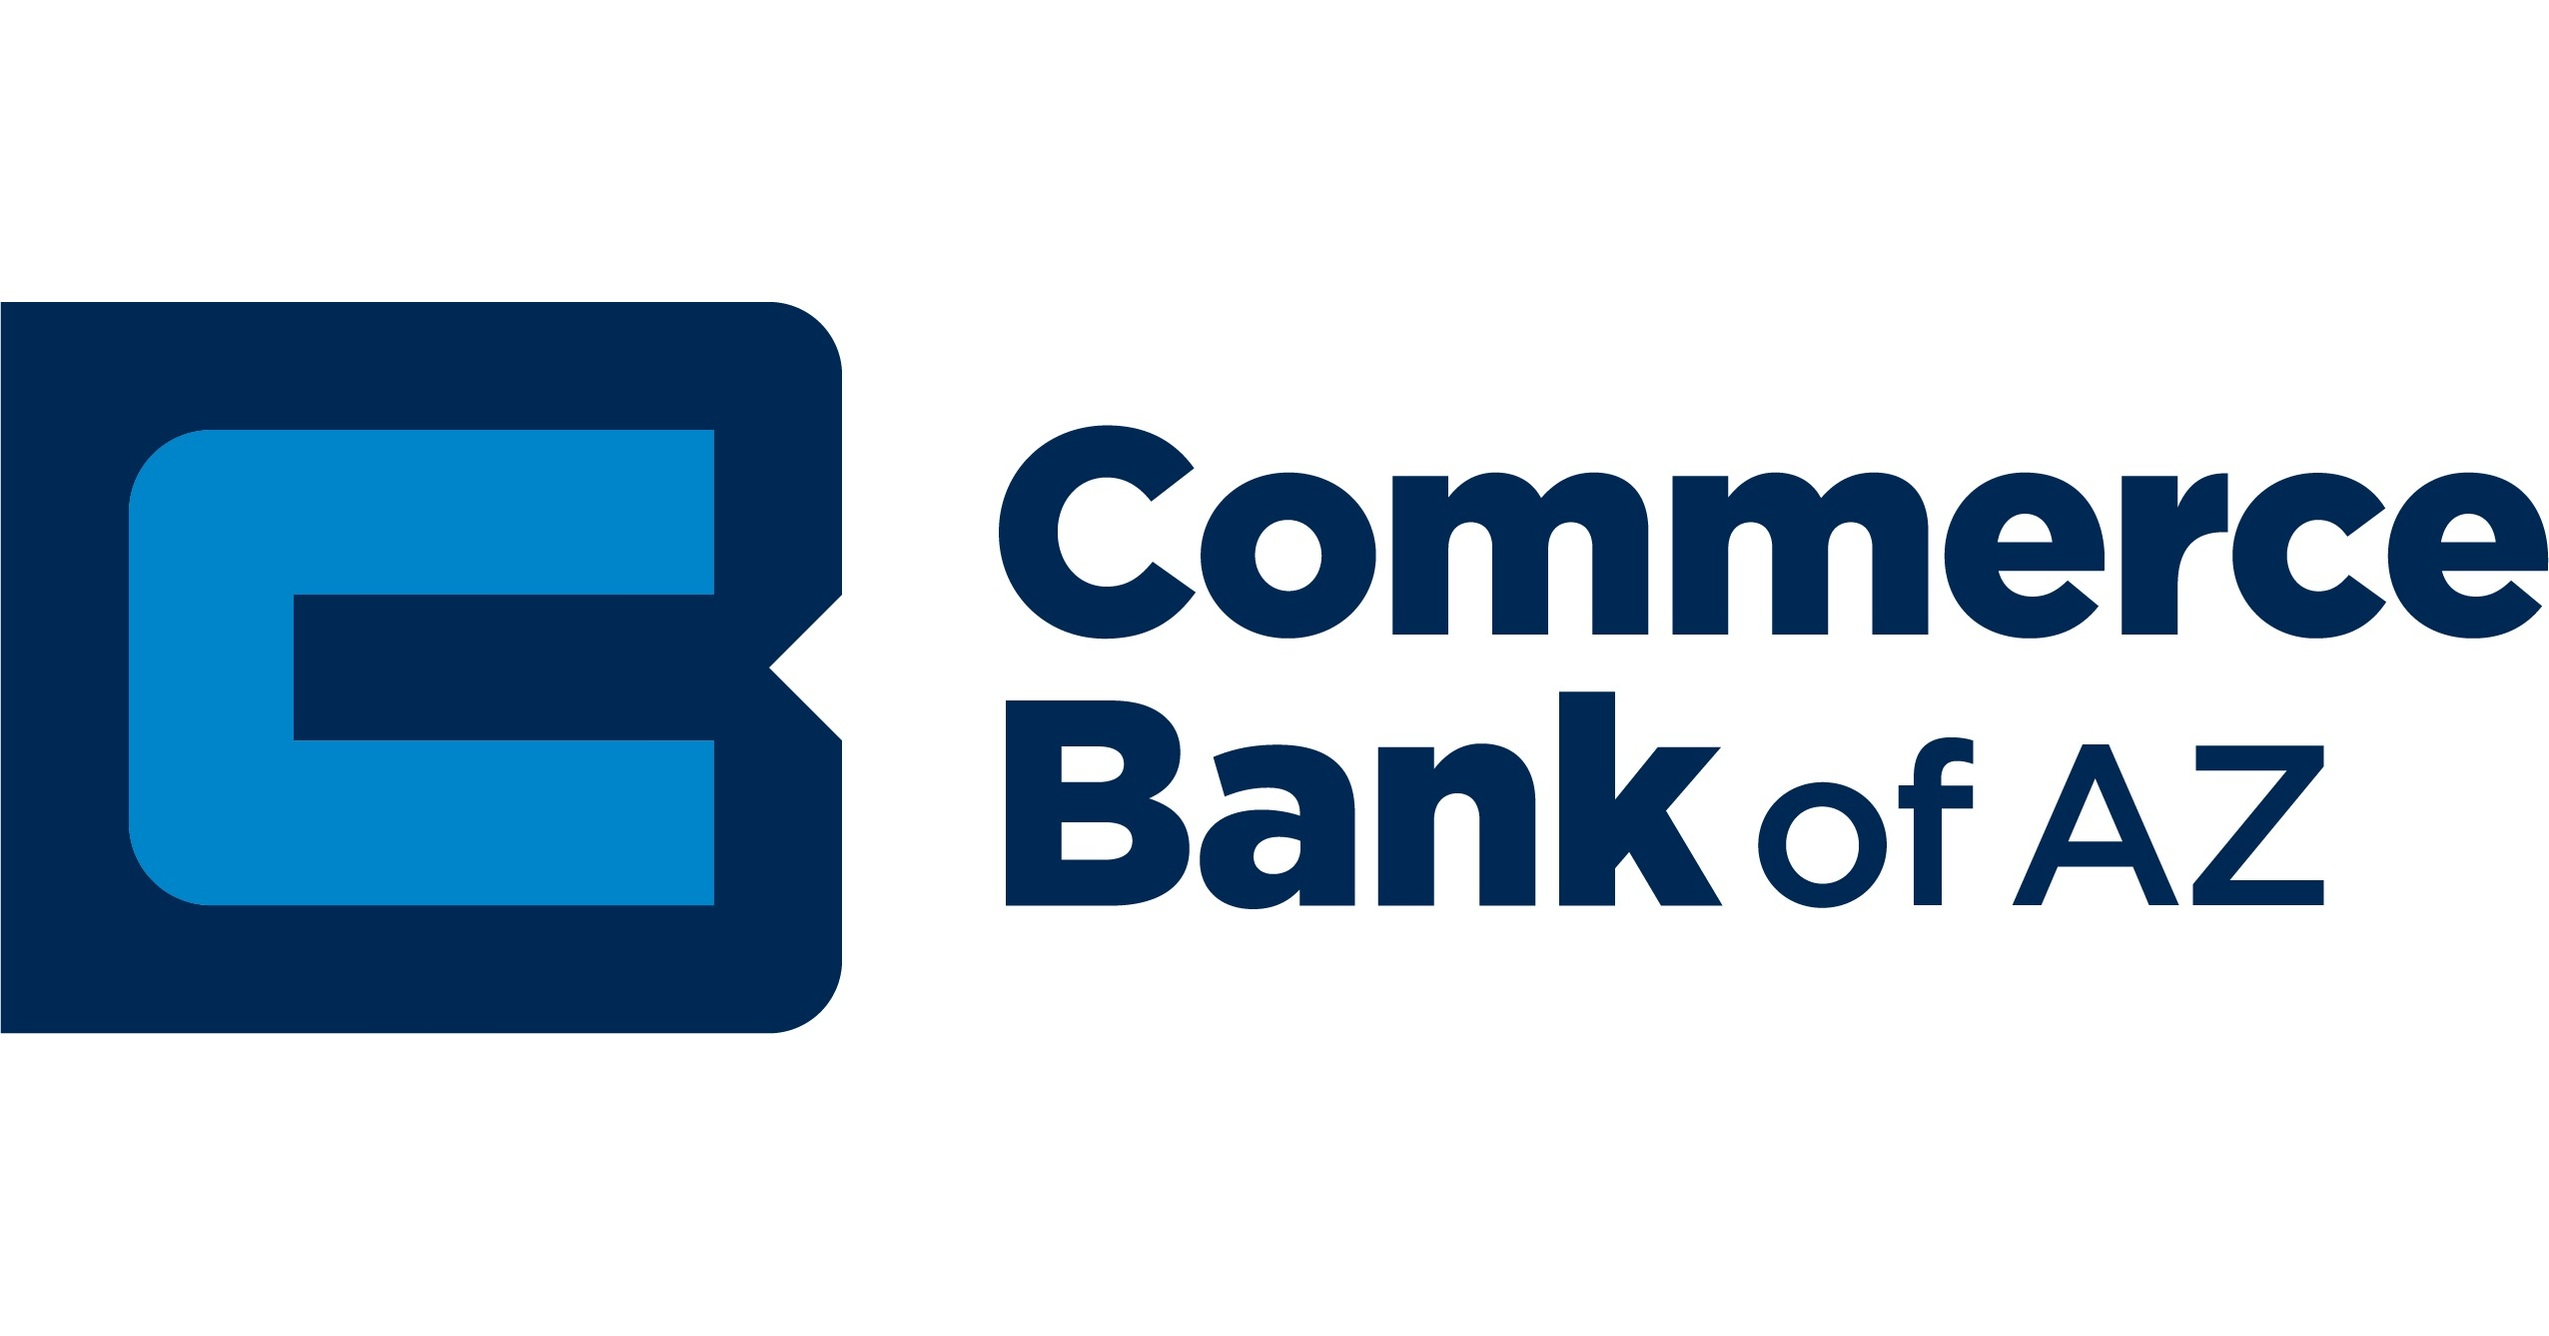 CBOA Financial, Inc. Reports Consolidated Earnings of $1,277,000 in 2Q 2021